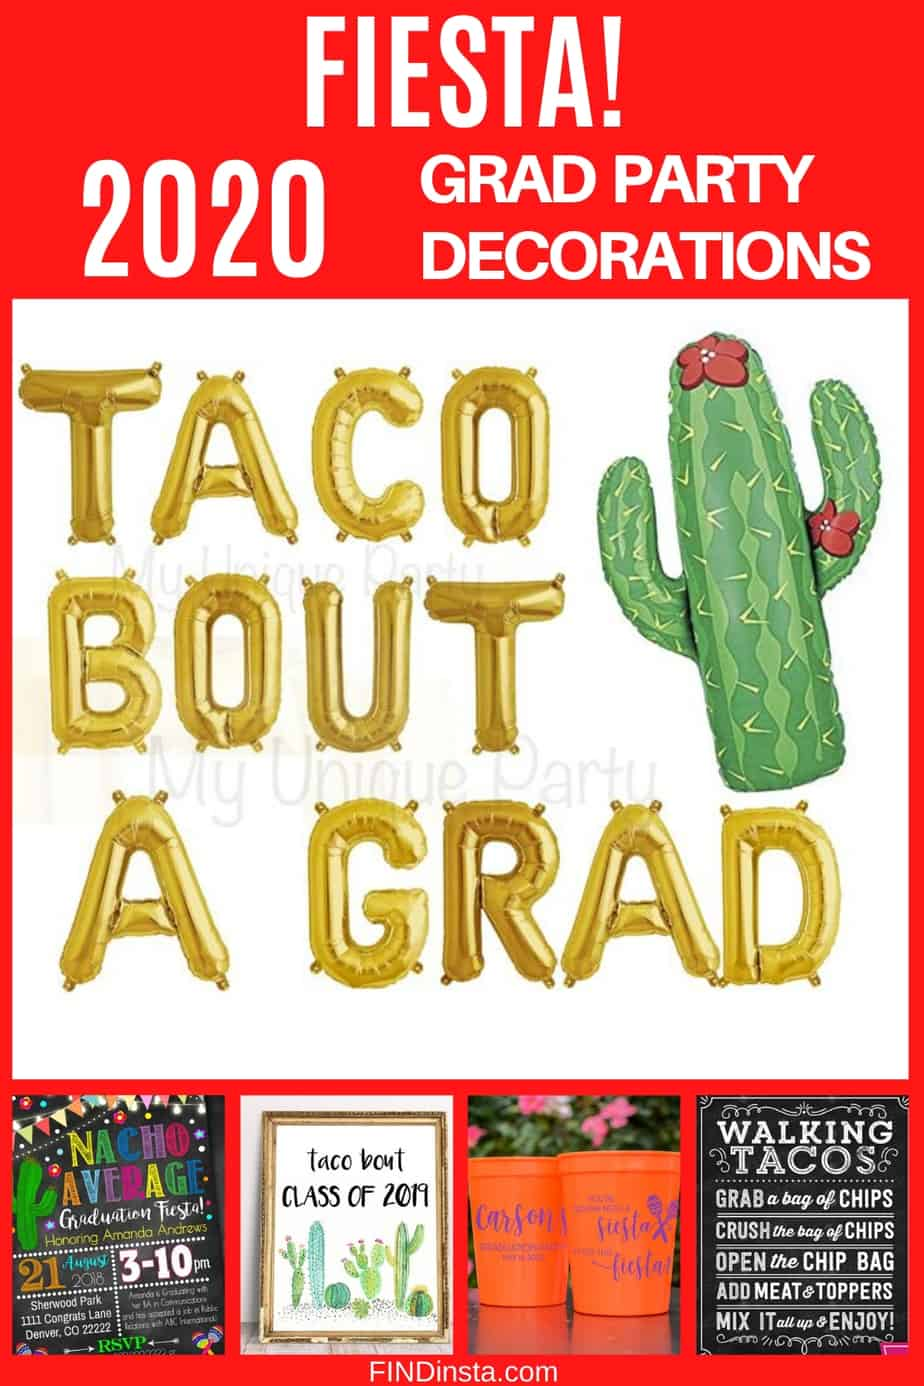 Graduation Party Themes 2020 - What's more festive than a colorful fiesta? Make your son's or daughter's grad party memorable with this festive Mexican fiesta inspired party decorations!  Click for decorating ideas.  #FINDinista #gradparty #graduationparty